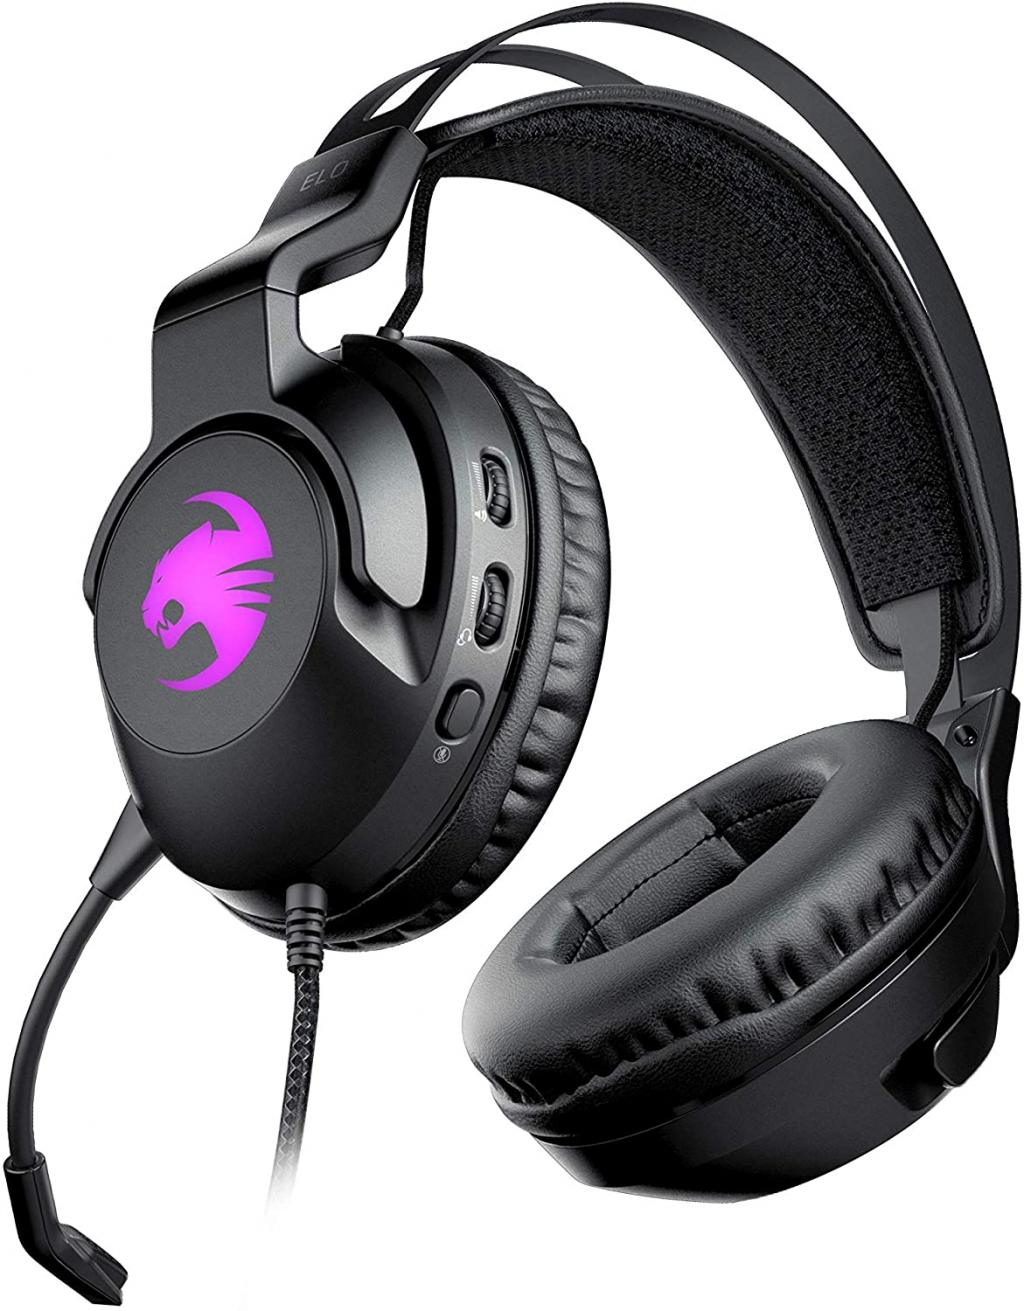 ROCCAT - Elo 7.1 USB Wired Headset_3